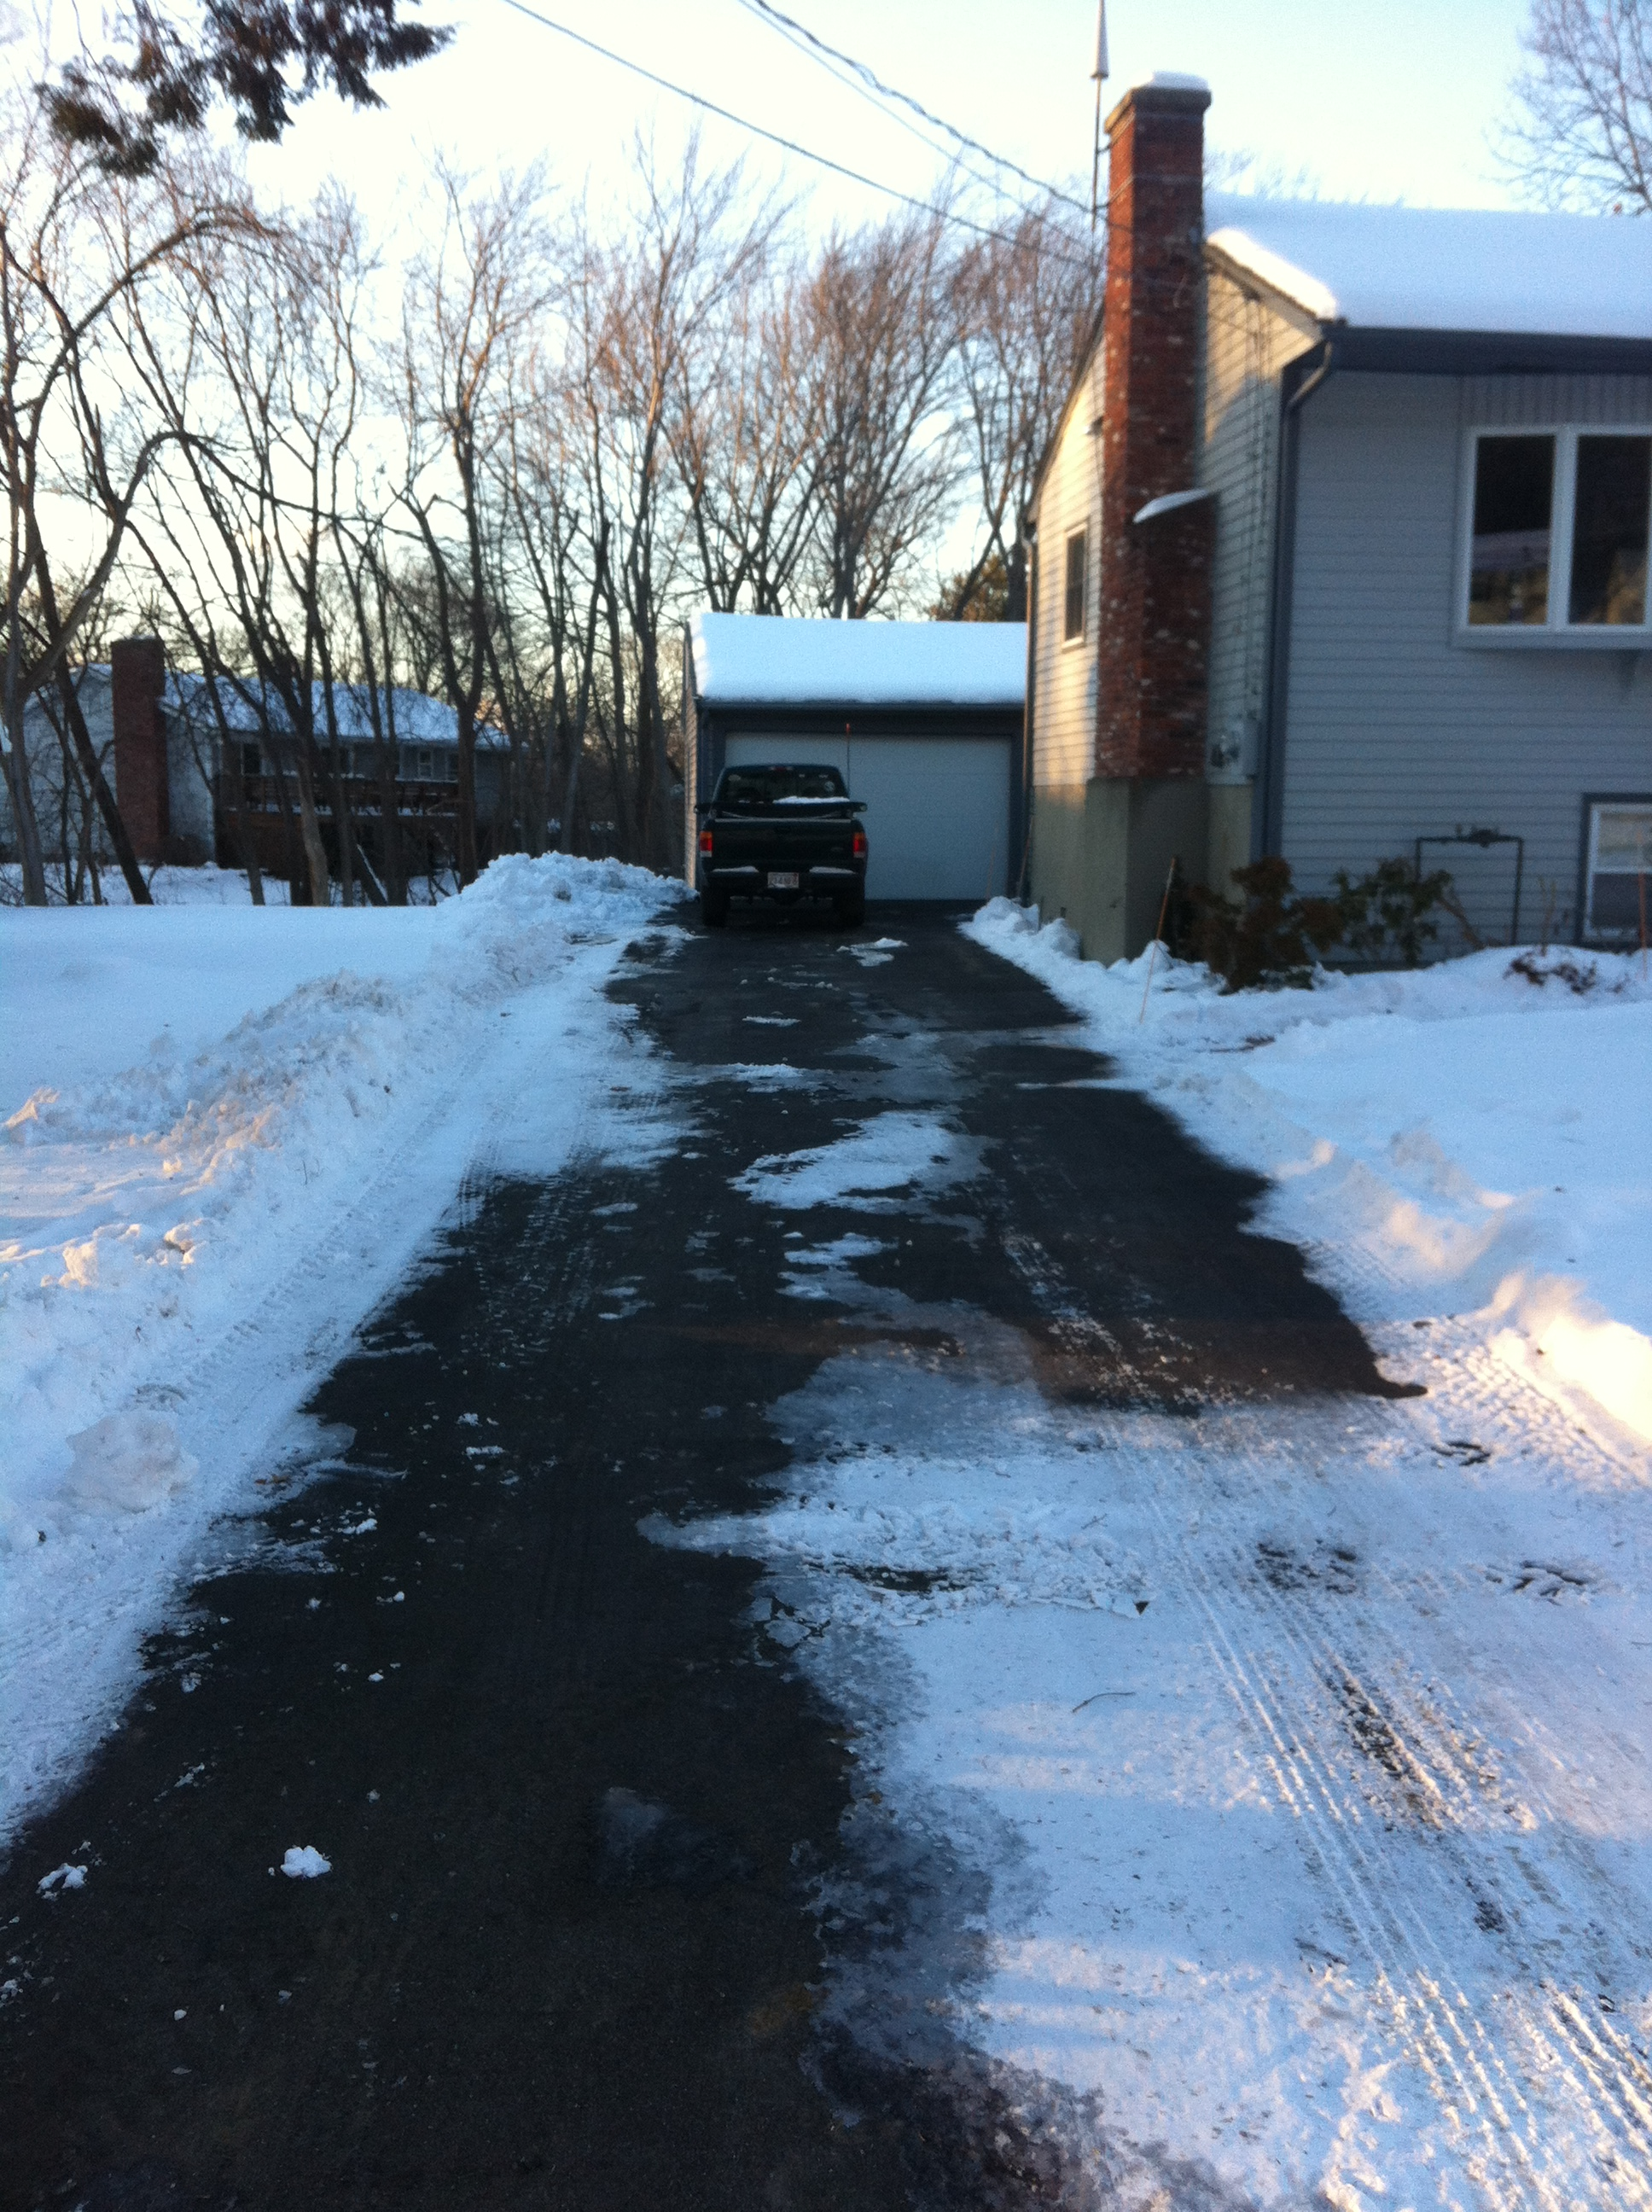 hight resolution of obviously that particular edge is more important to be useful for vehicles to use than to know where the formal driveway edge is for plowing